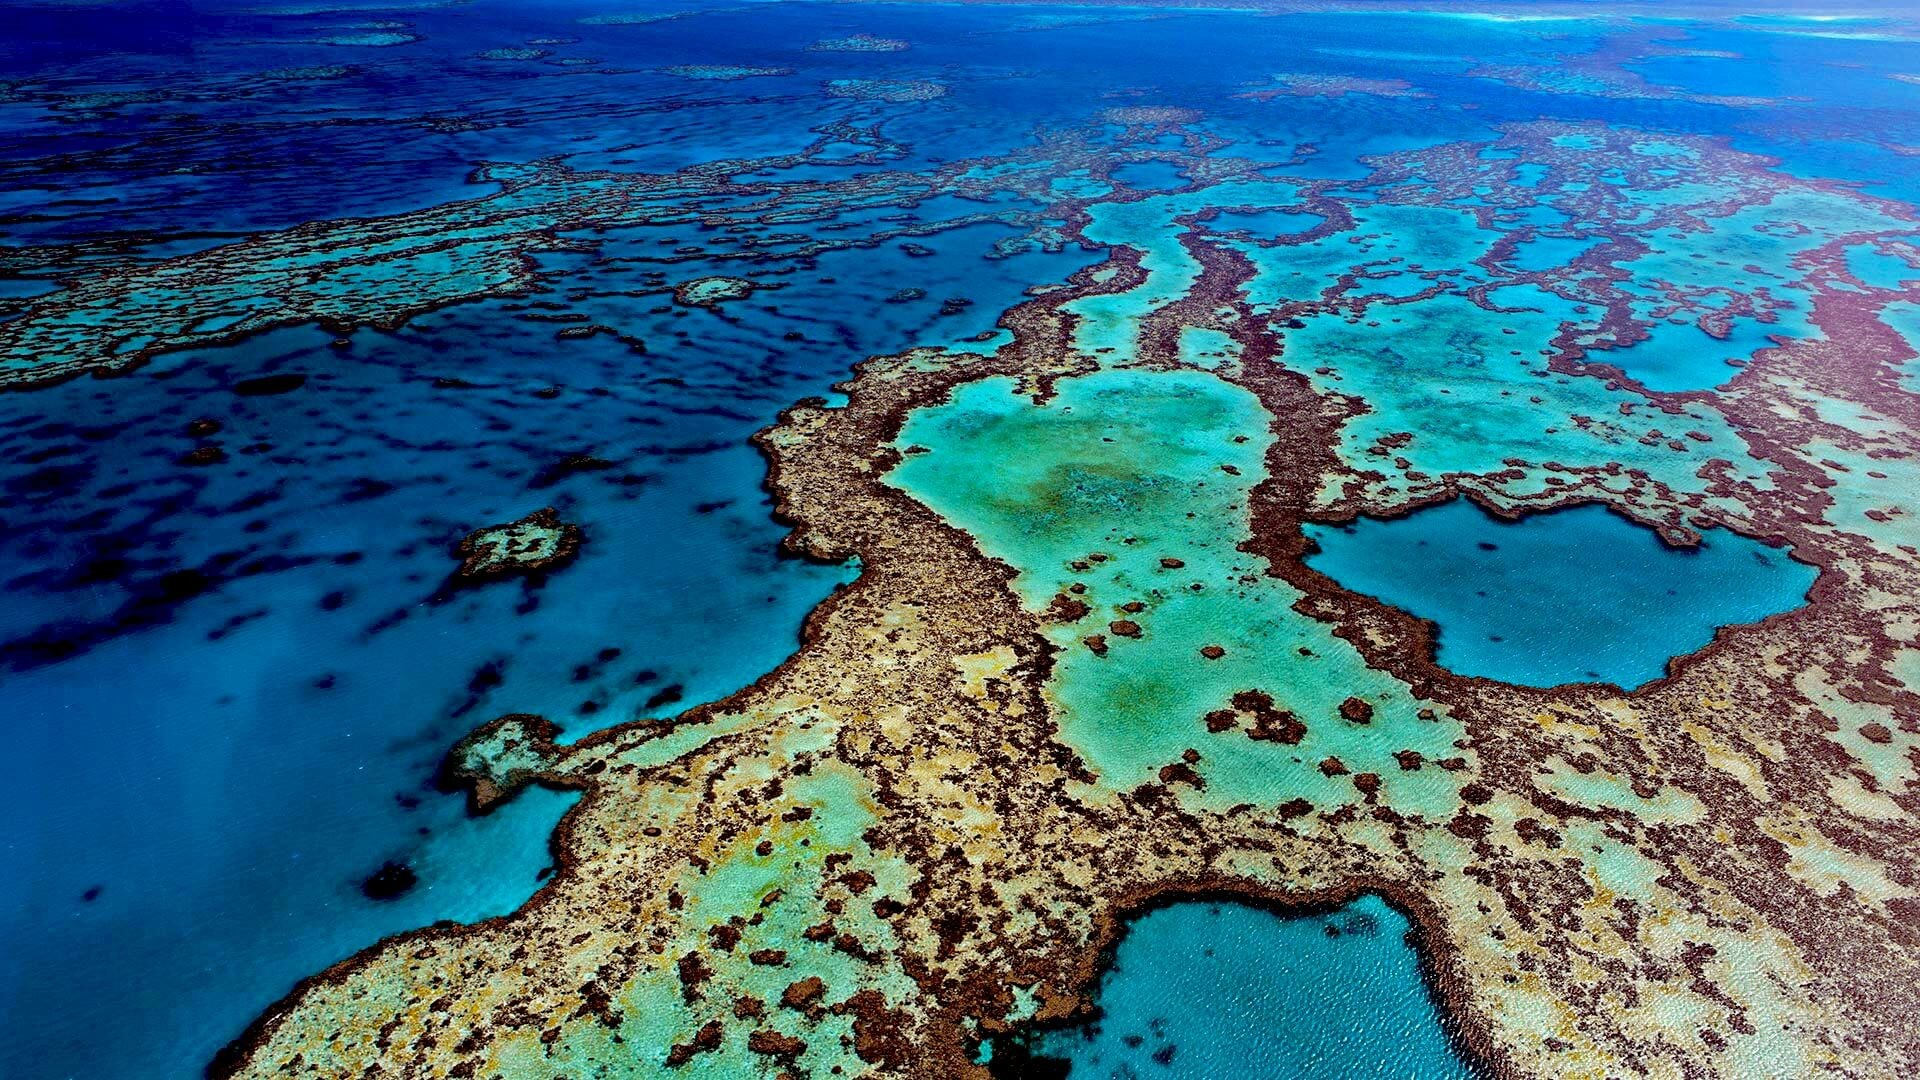 1920x1080 A part Of The Great Barrier Reef. The most beautiful place in the world.